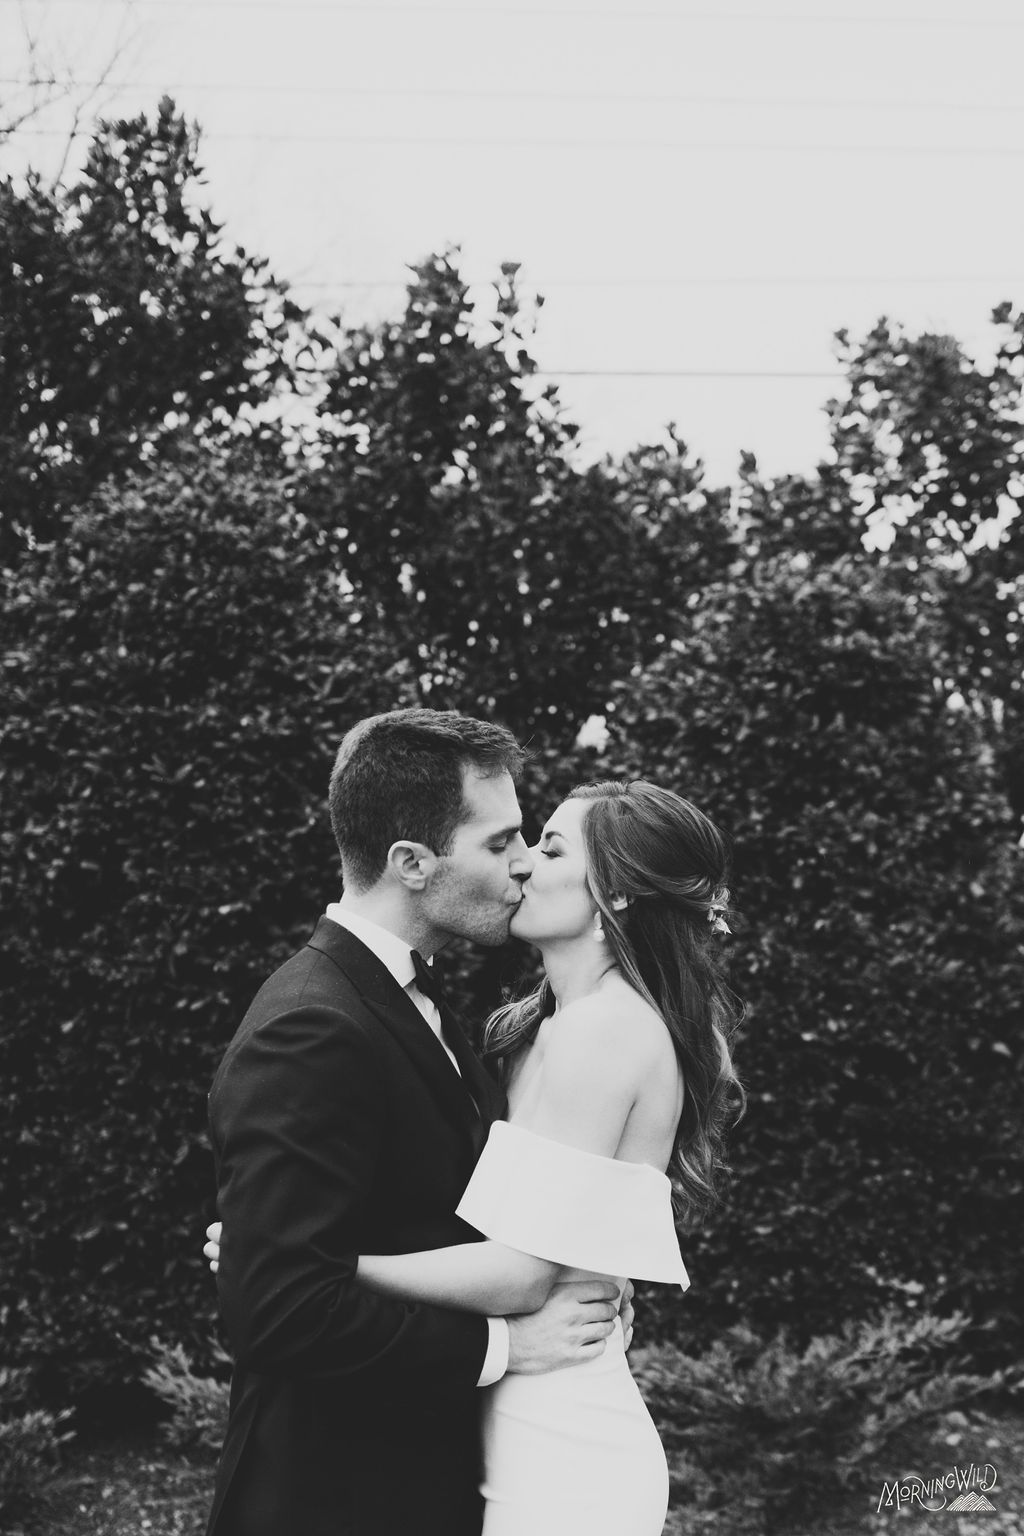 Romantic Black and White Wedding Photos in 2020 Nc